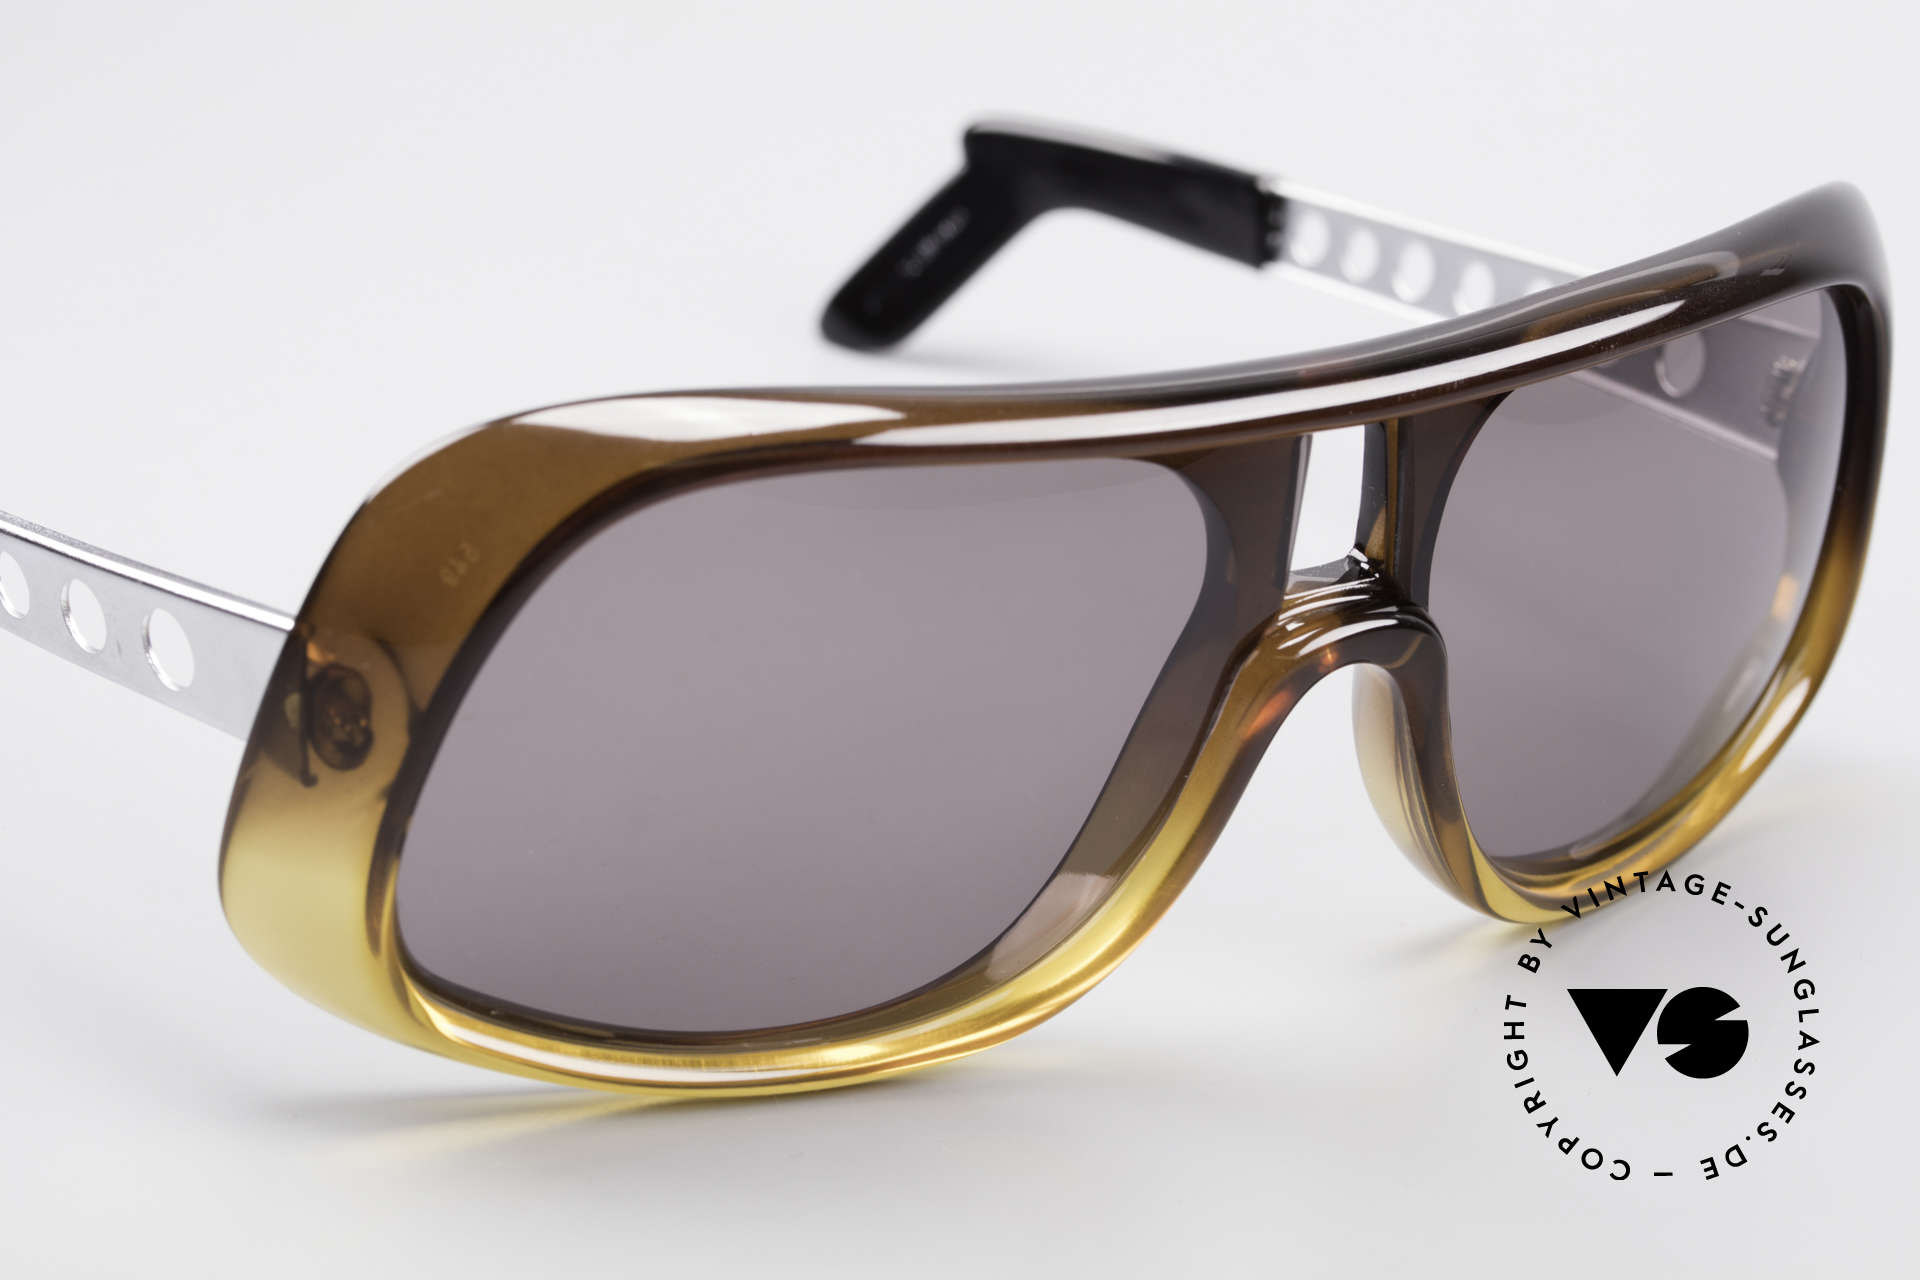 Carrera 549 Leo DiCaprio Movie Sunglasses, almost 50 years old rarity, unworn, museum piece, Made for Men